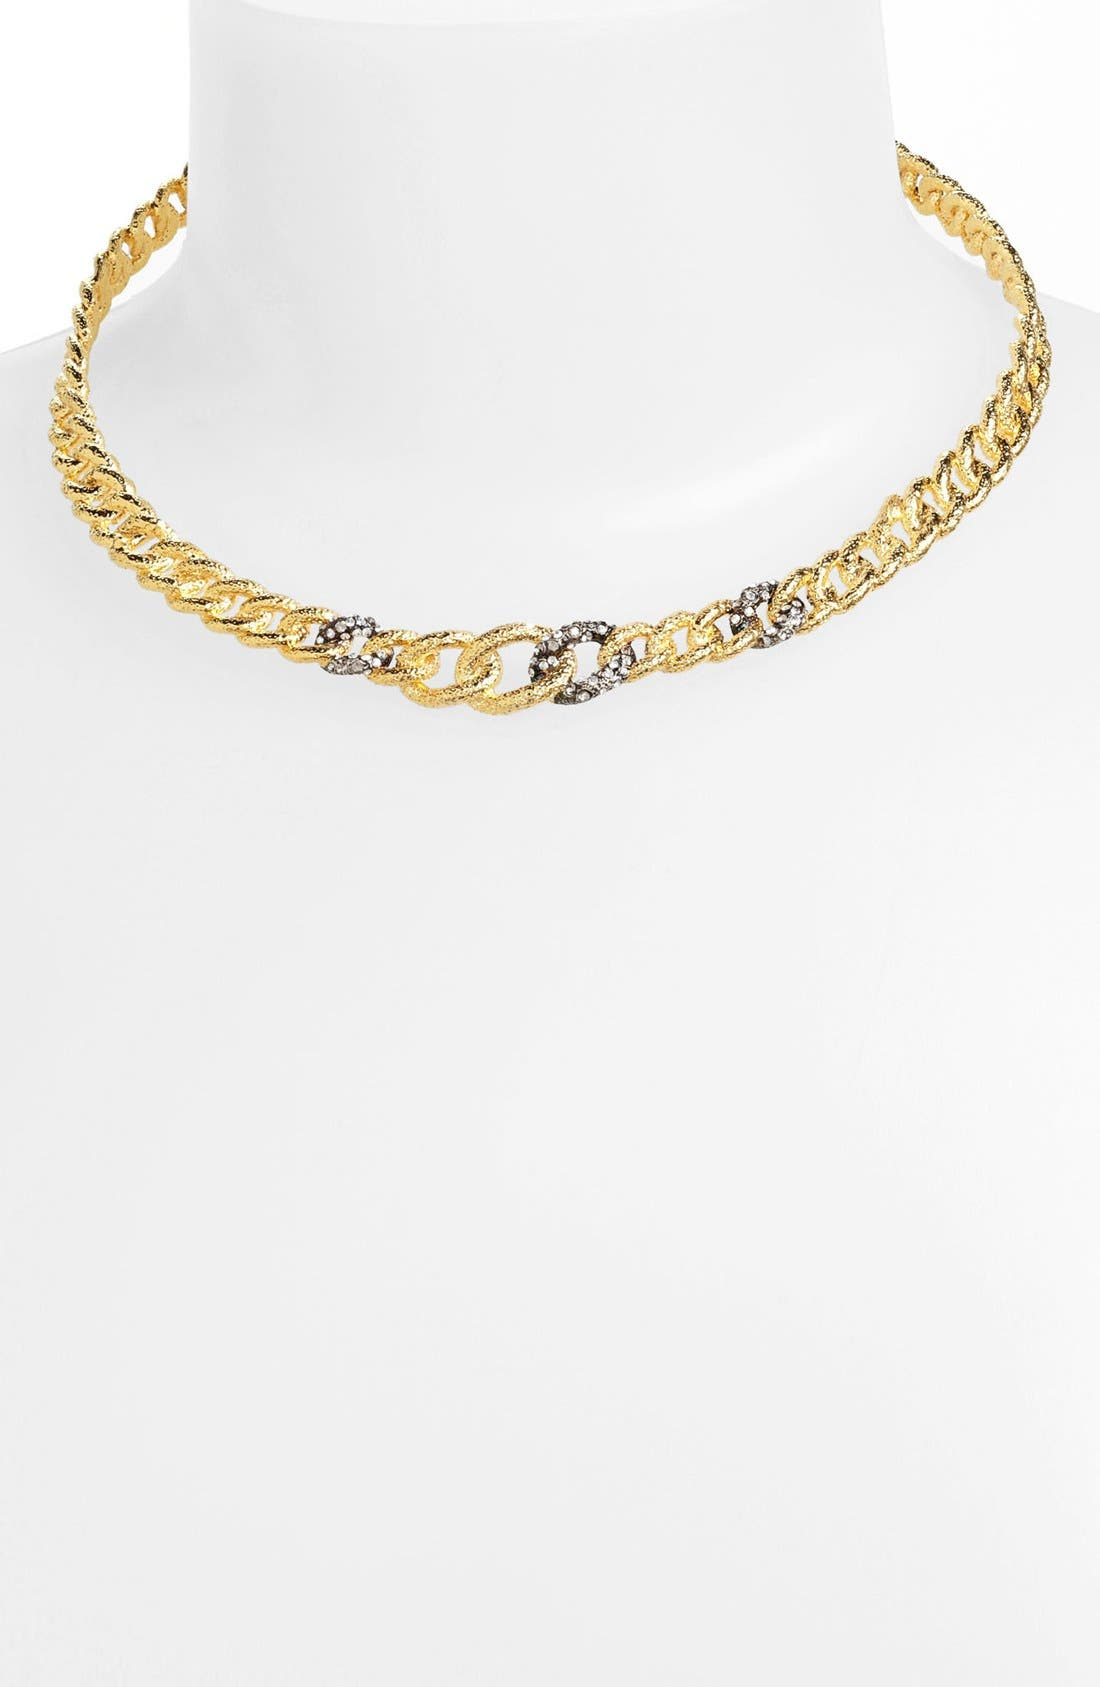 Alternate Image 1 Selected - Alexis Bittar 'Elements - Cordova' Link Collar Necklace